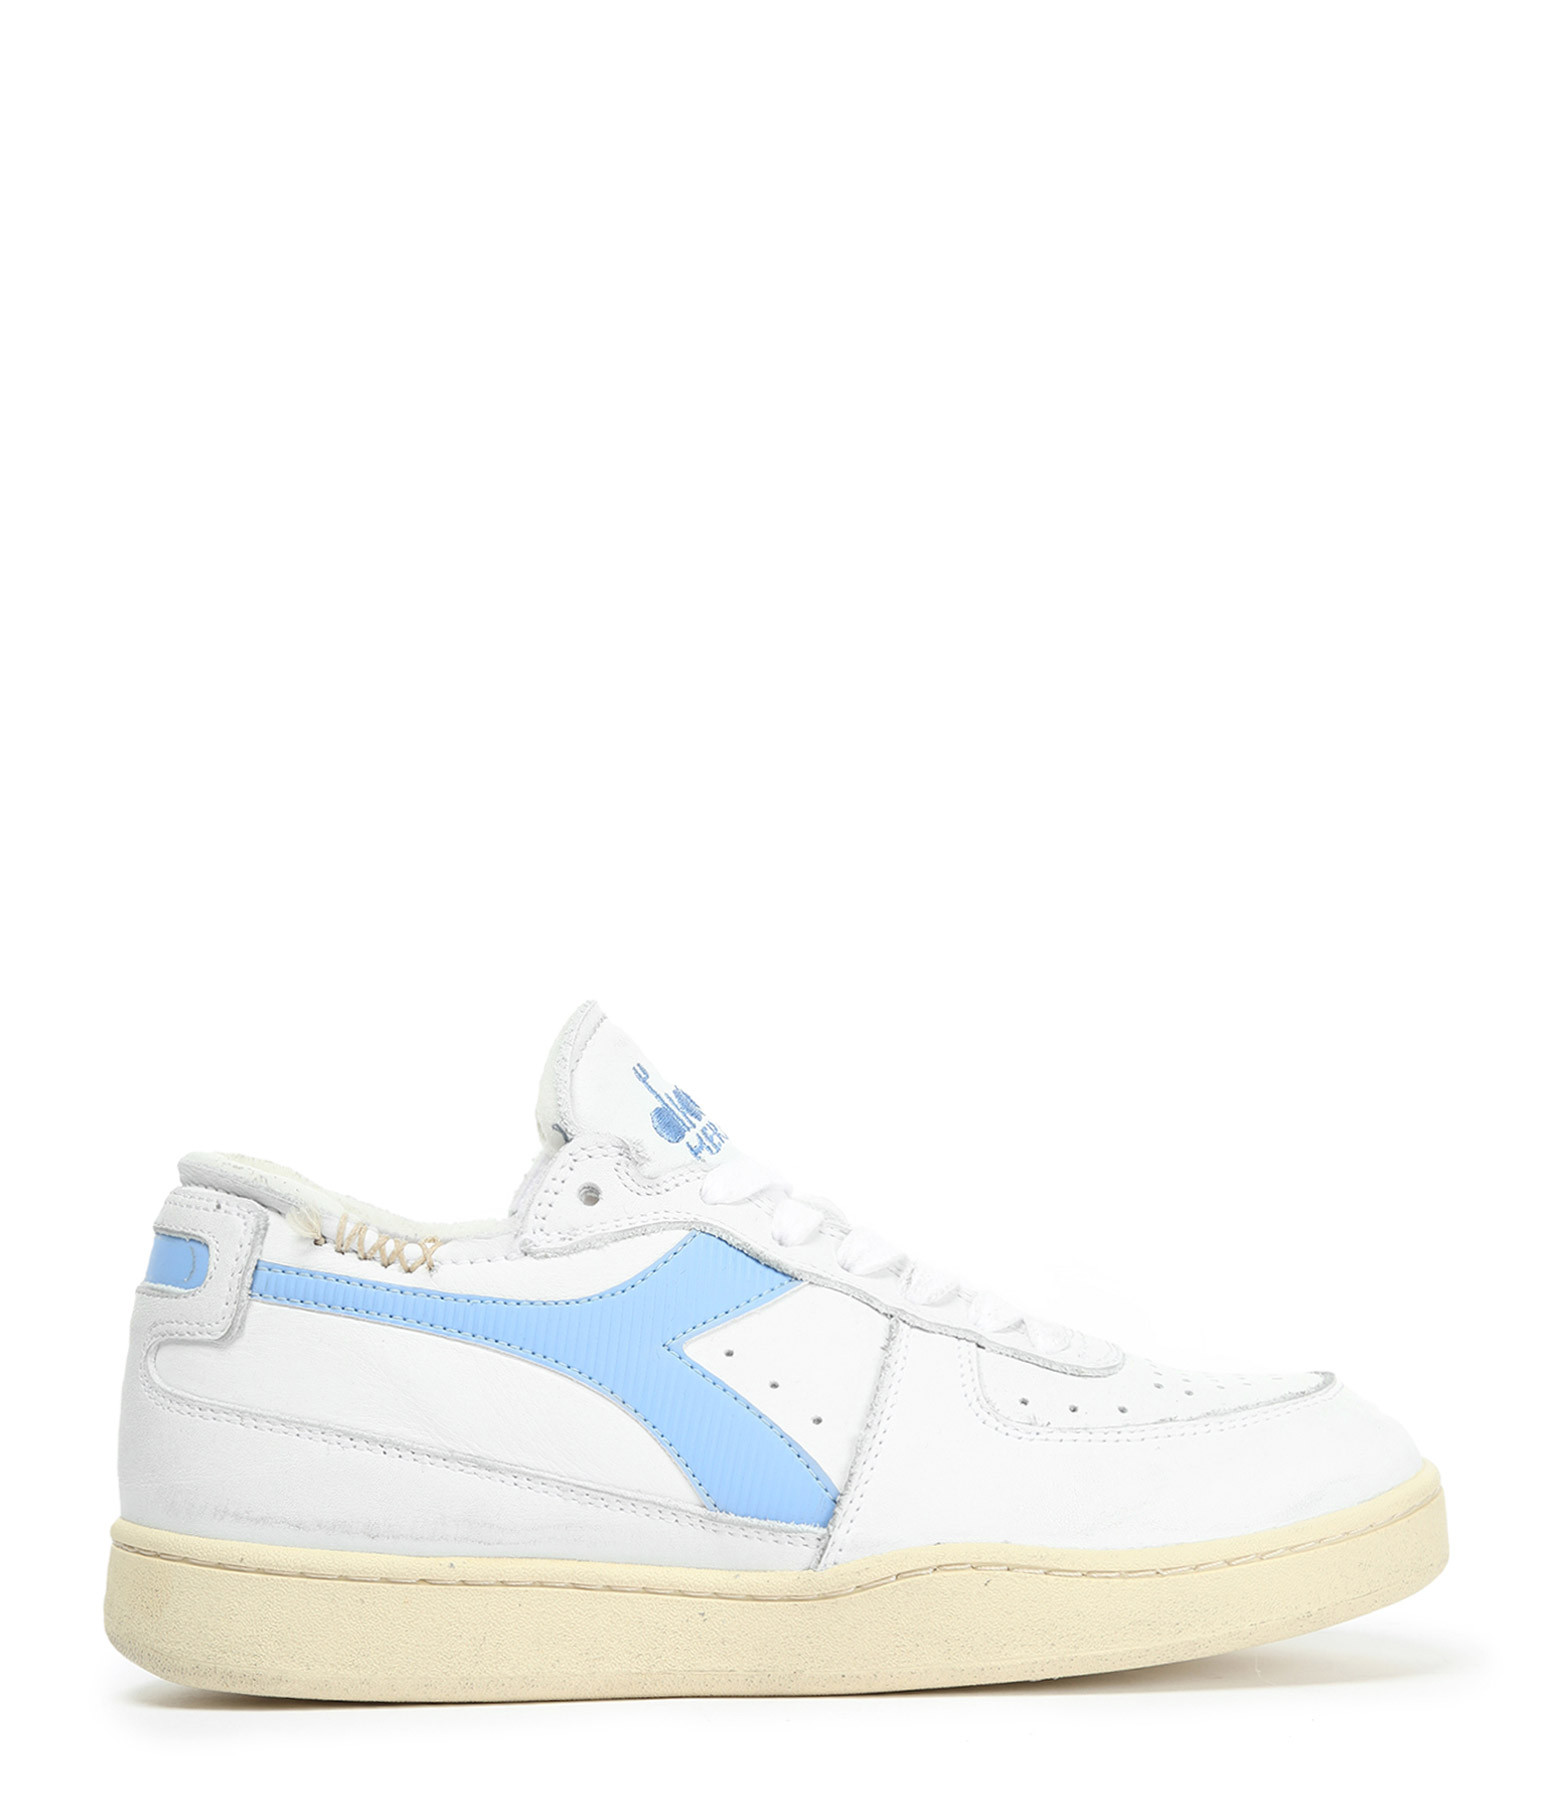 DIADORA - Baskets Mi Basket Row Cut Blanc Bleu